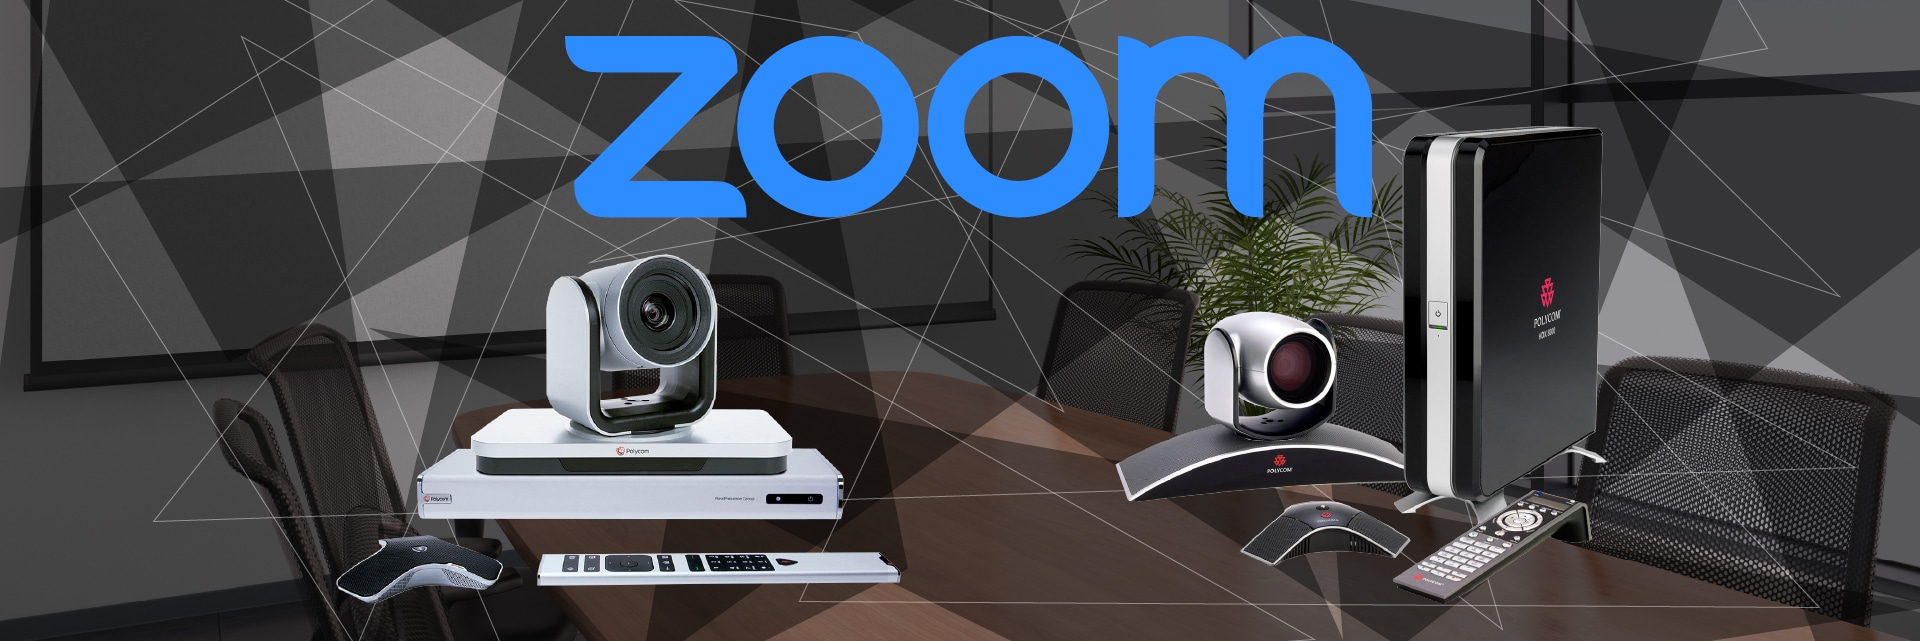 Zoom Room Connector – Connect Your H.323 or SIP Endpoints to Zoom